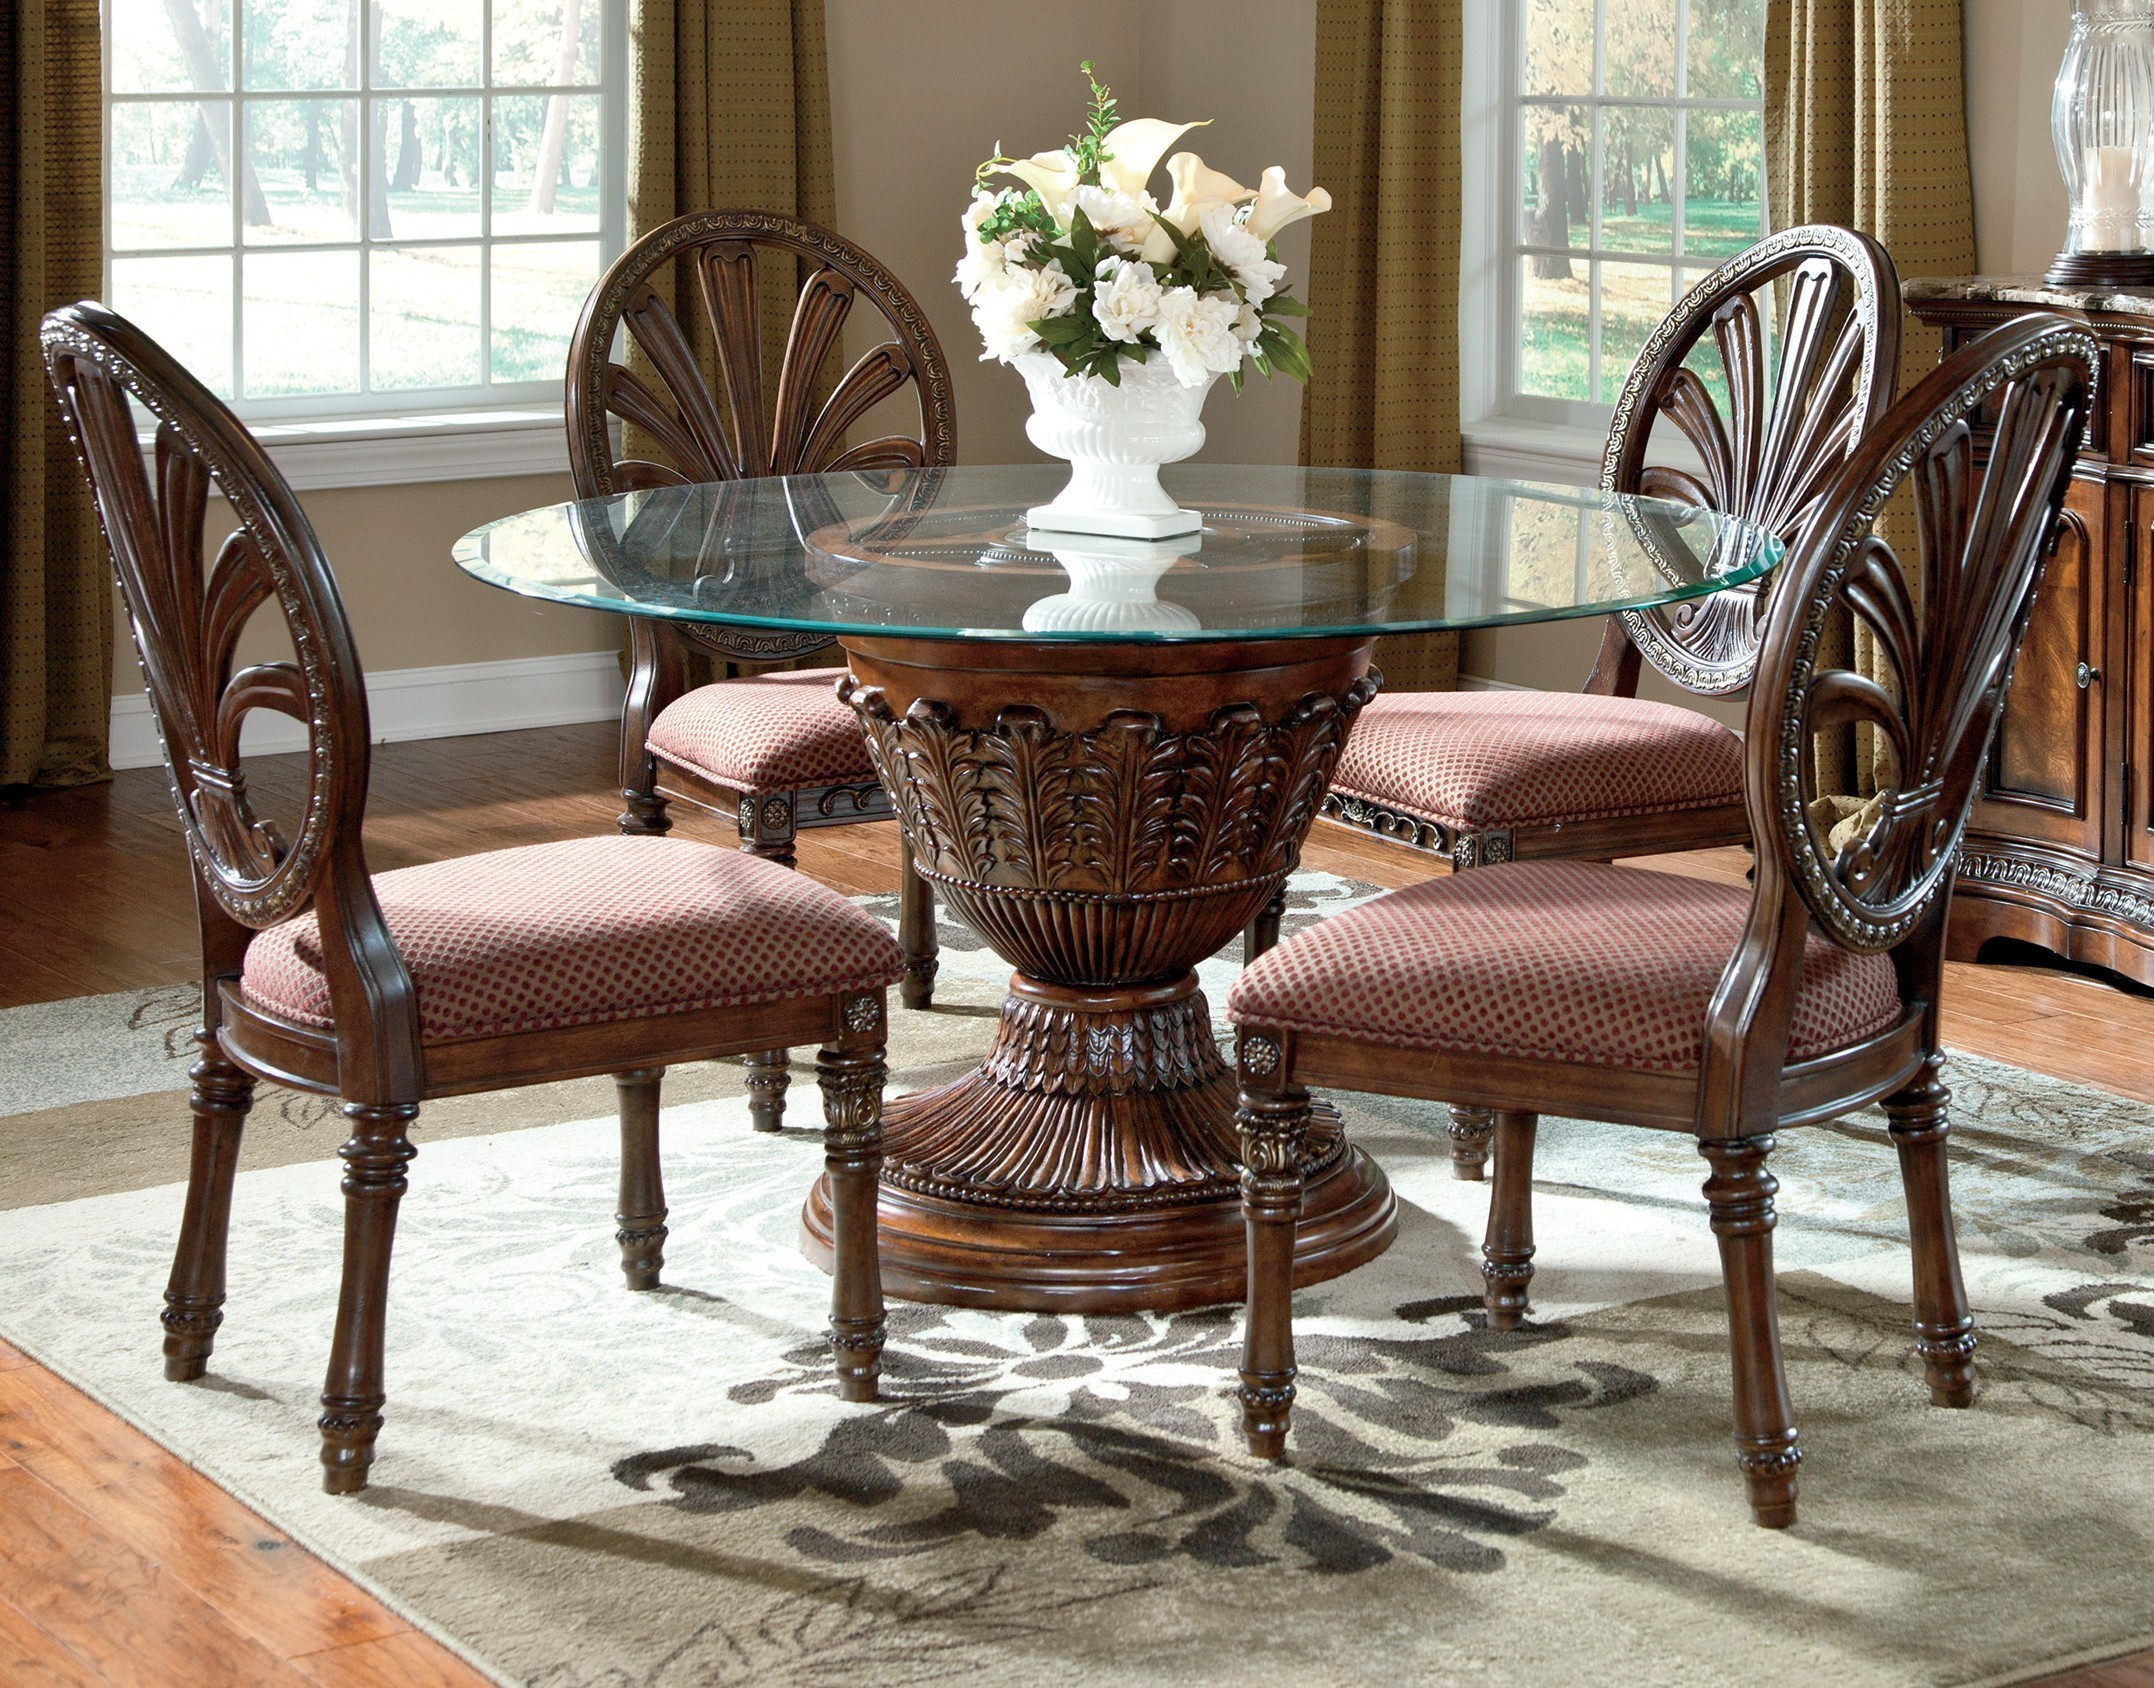 Best ideas about Ashley Furniture Dining Sets . Save or Pin Breakfast Table Sets & Full Size Kitchen Table5 Piece Now.